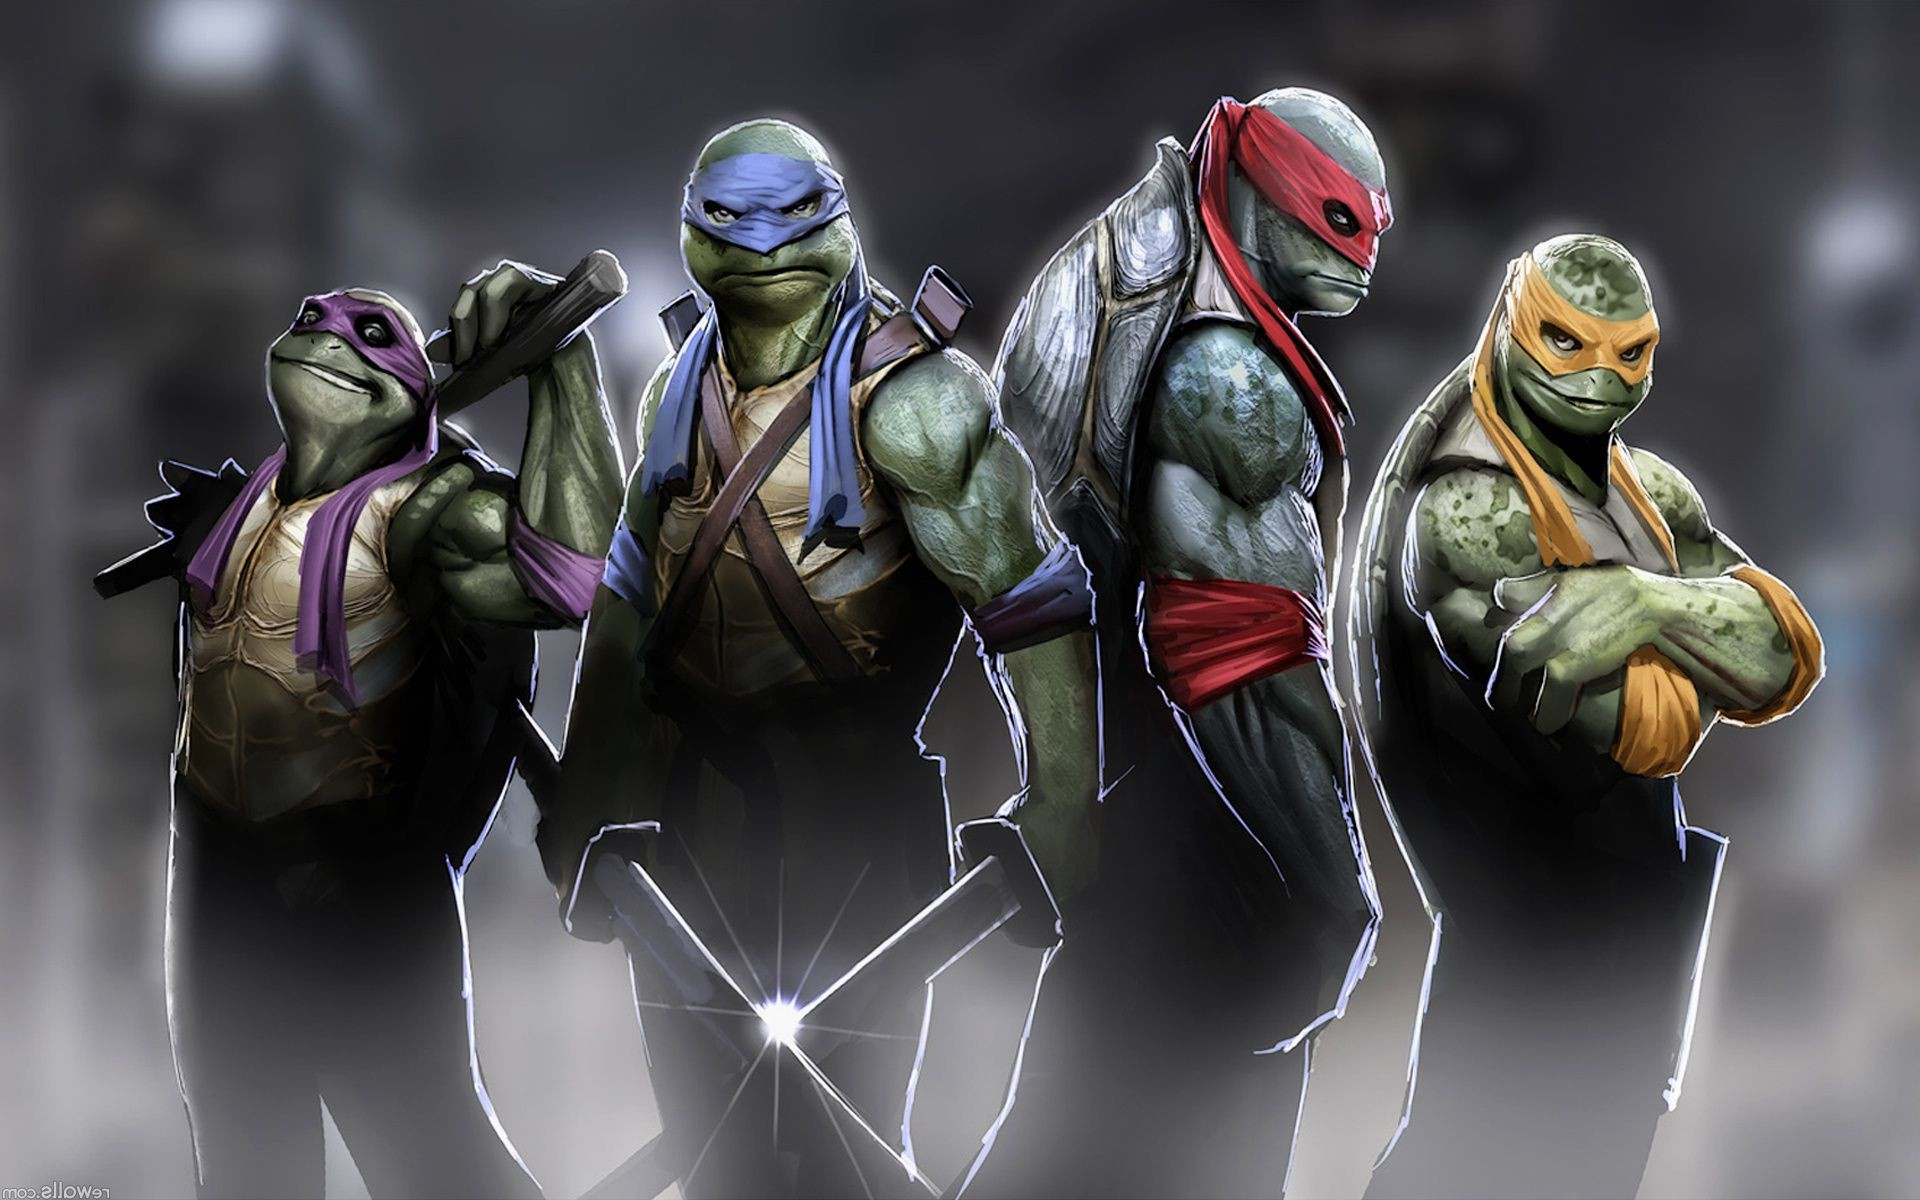 four fighters from the game teenage mutant ninja turtles